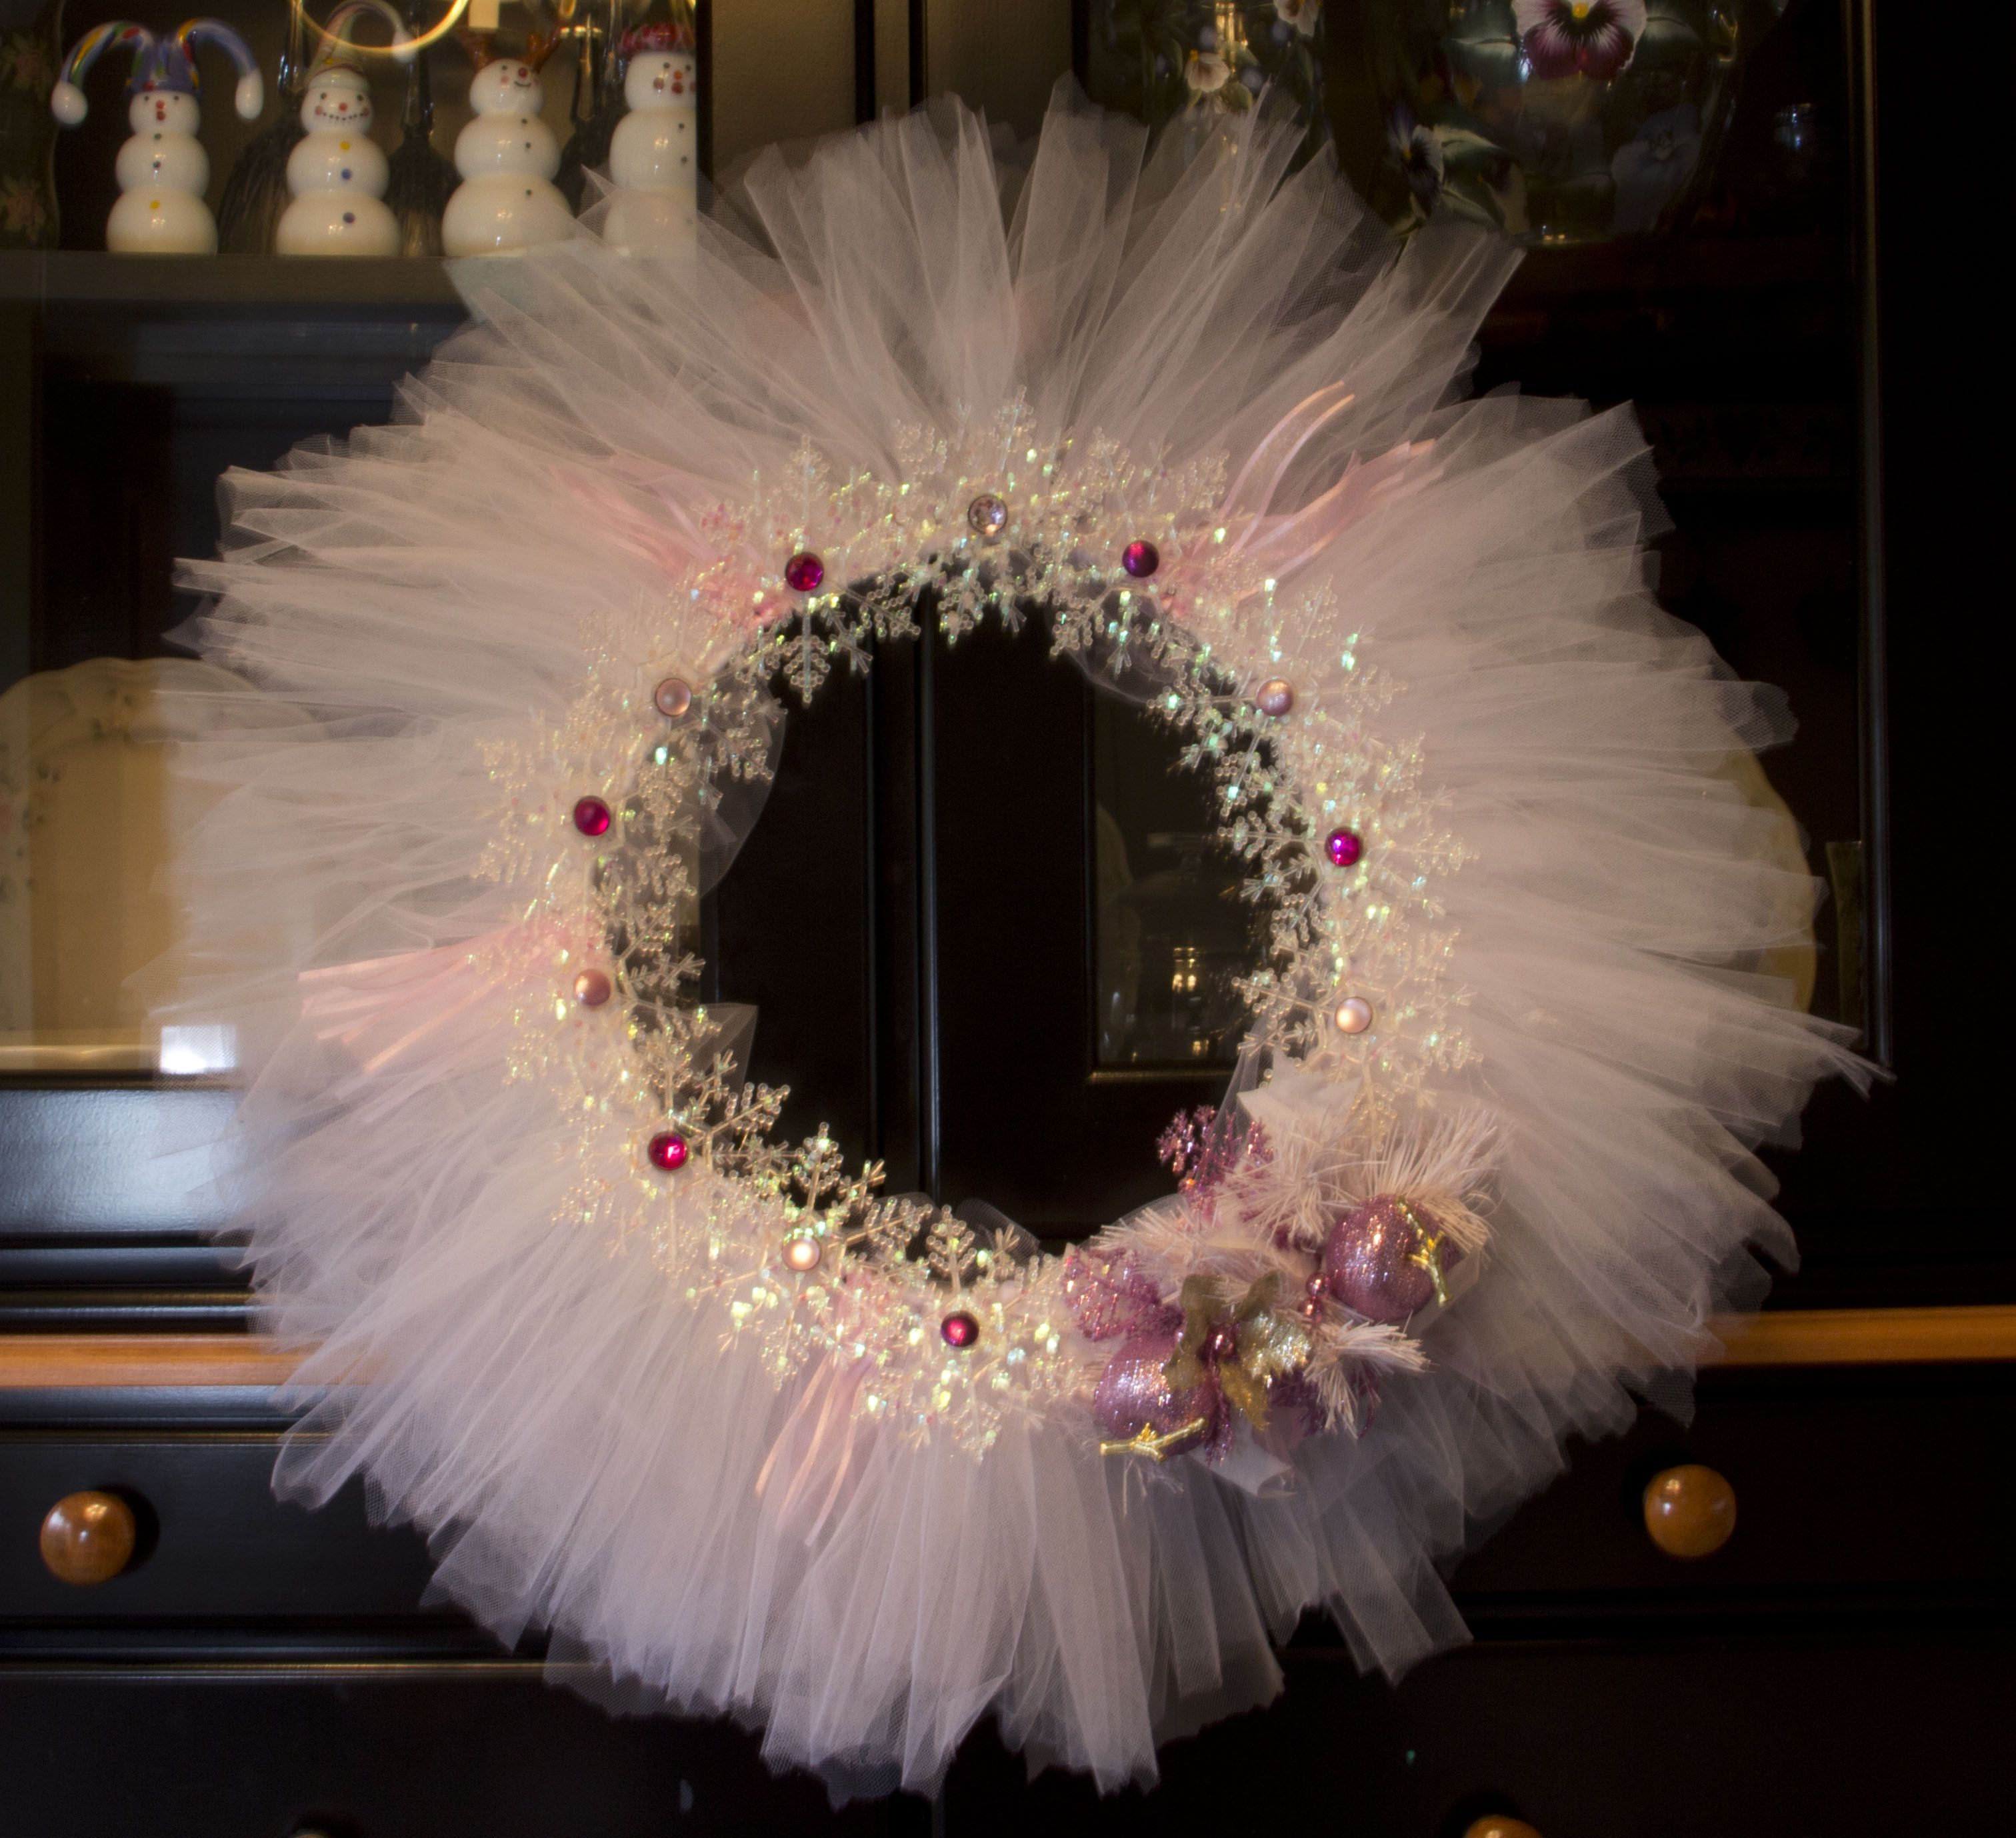 To start your Christmas tulle wreath, you will need to cut your tulle into strips. Have someone help you by holding the tulle, it makes it way easier to cut!